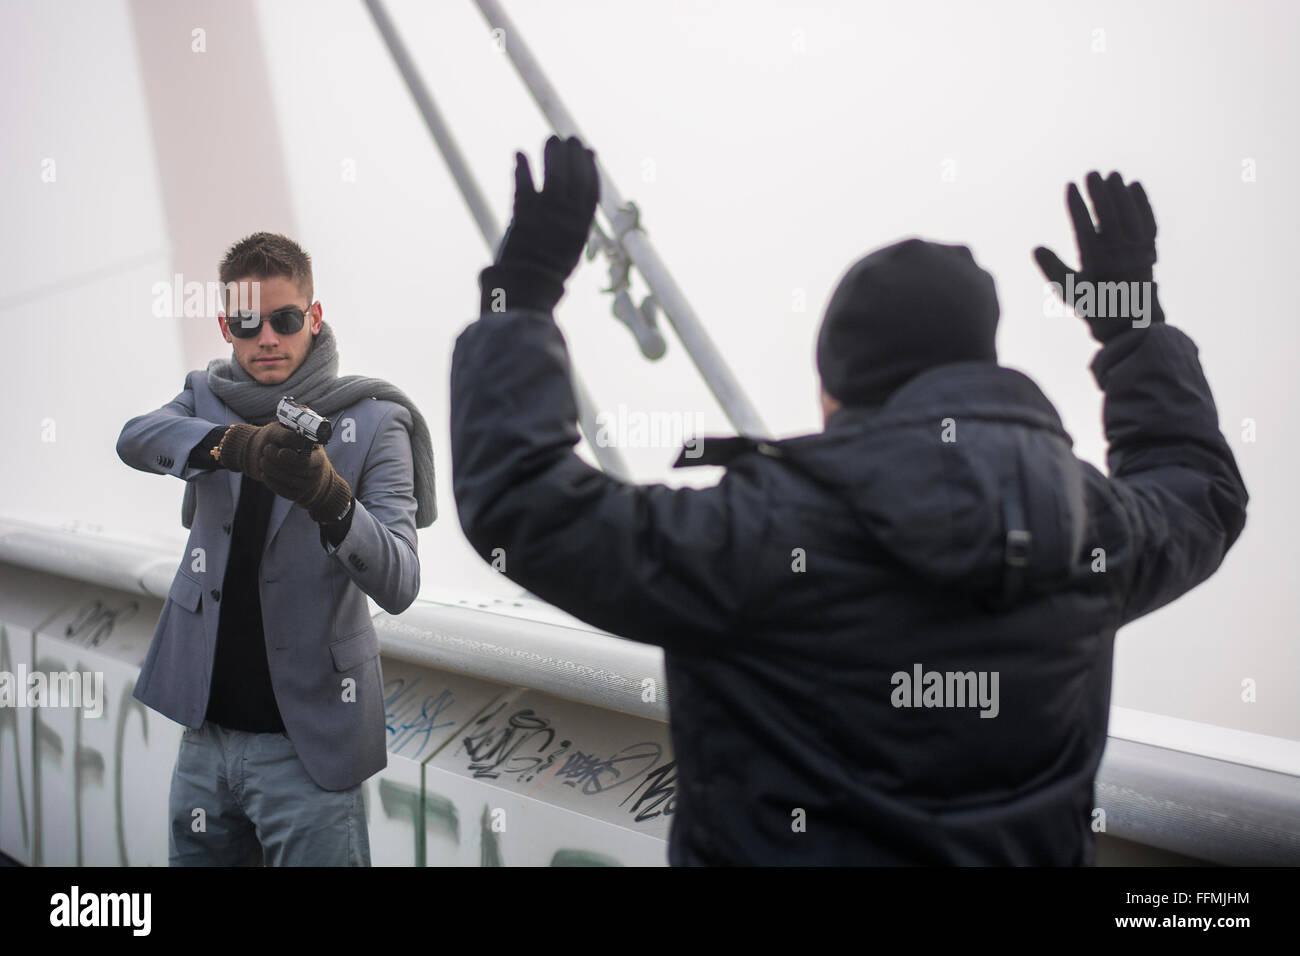 Killer drawing a bead on unrecognizable person while standing on foggy bridge - Stock Image